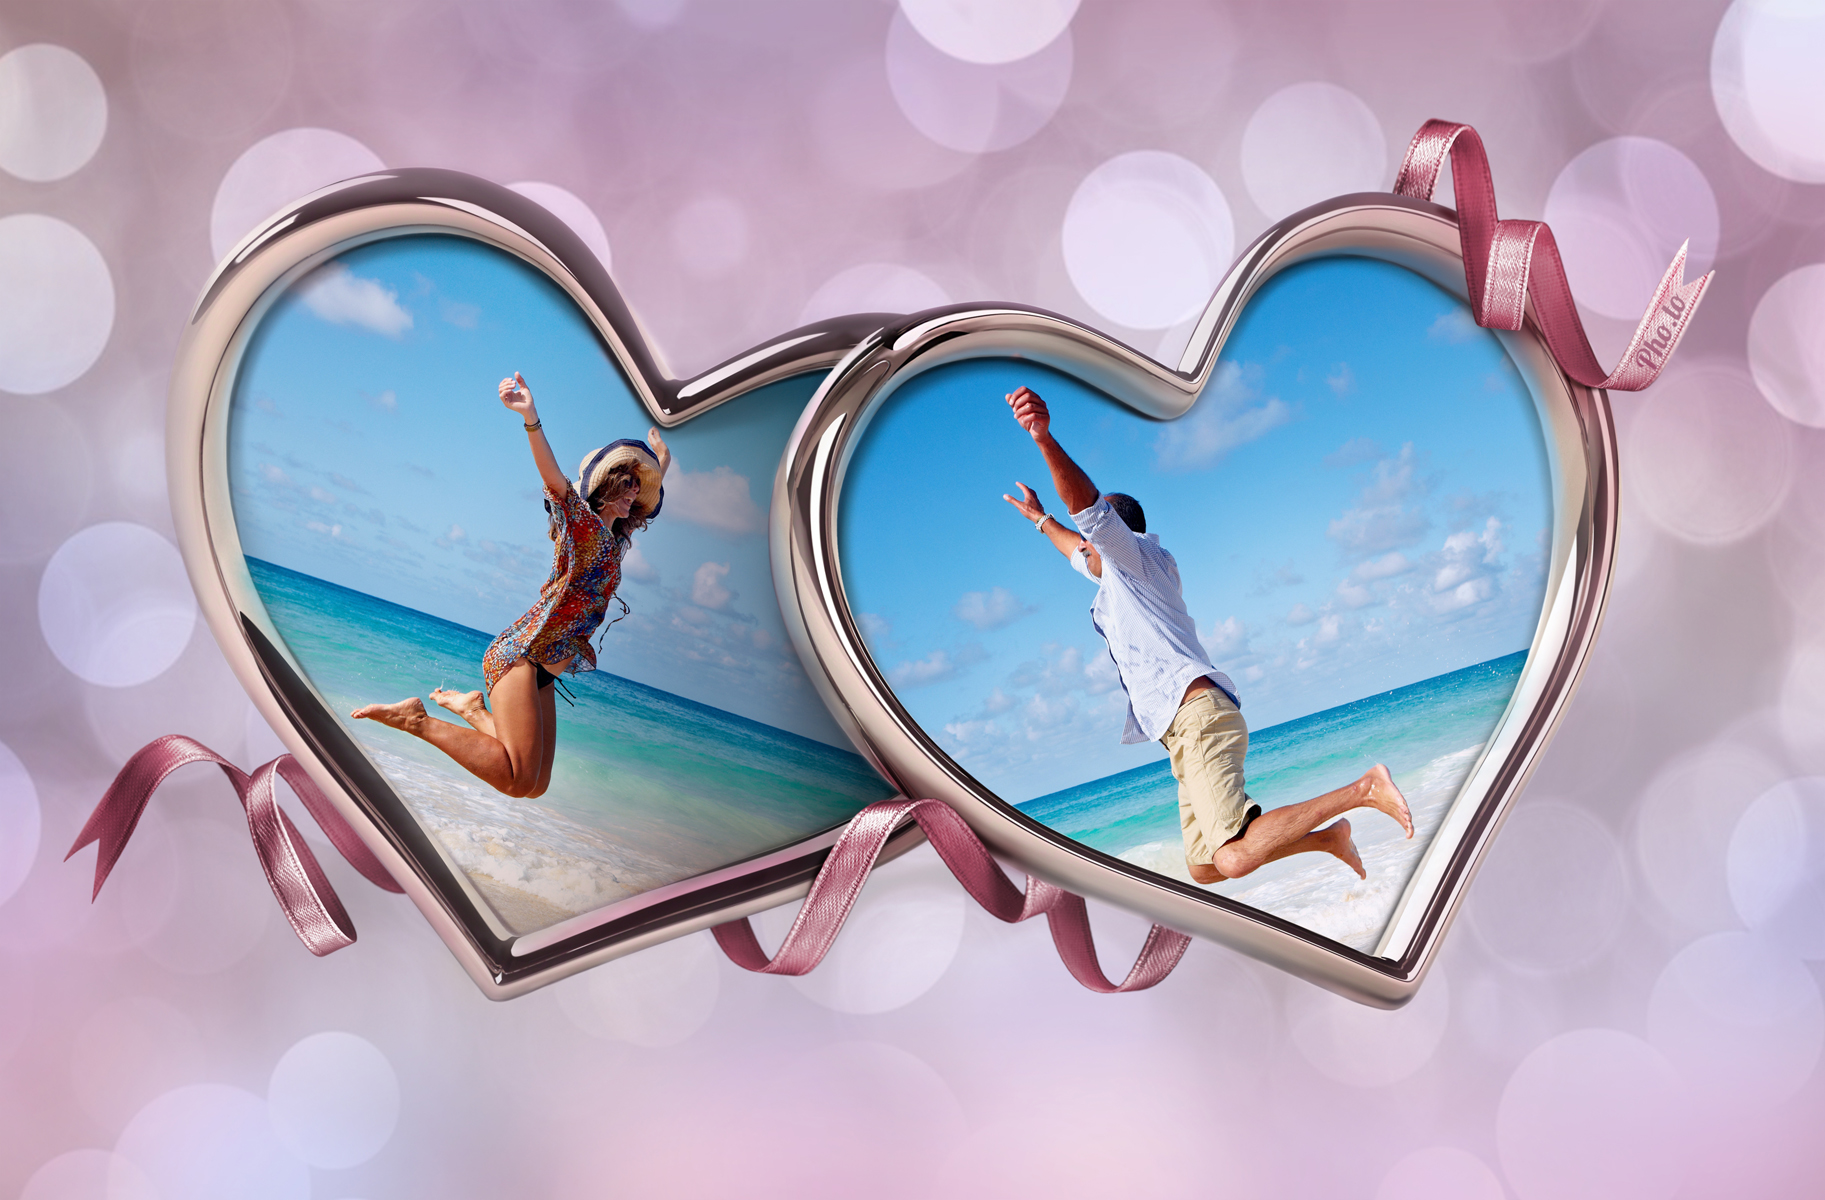 demonstration of online love frame with hearts for two photos